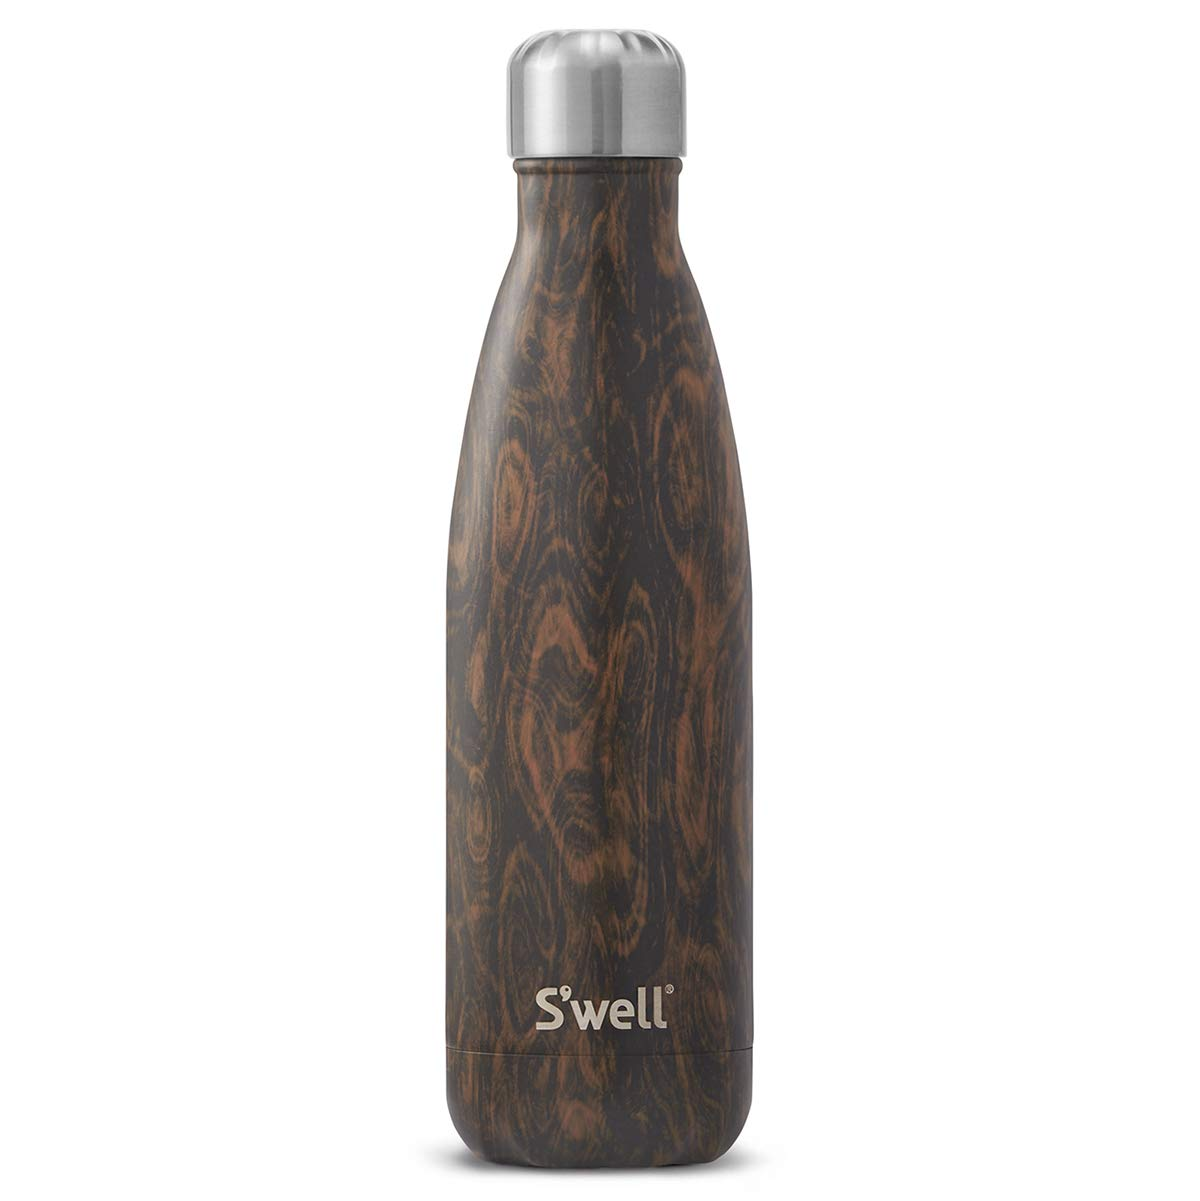 S'well Vacuum Insulated Stainless Steel Water Bottle, 17 oz, Wenge Wood